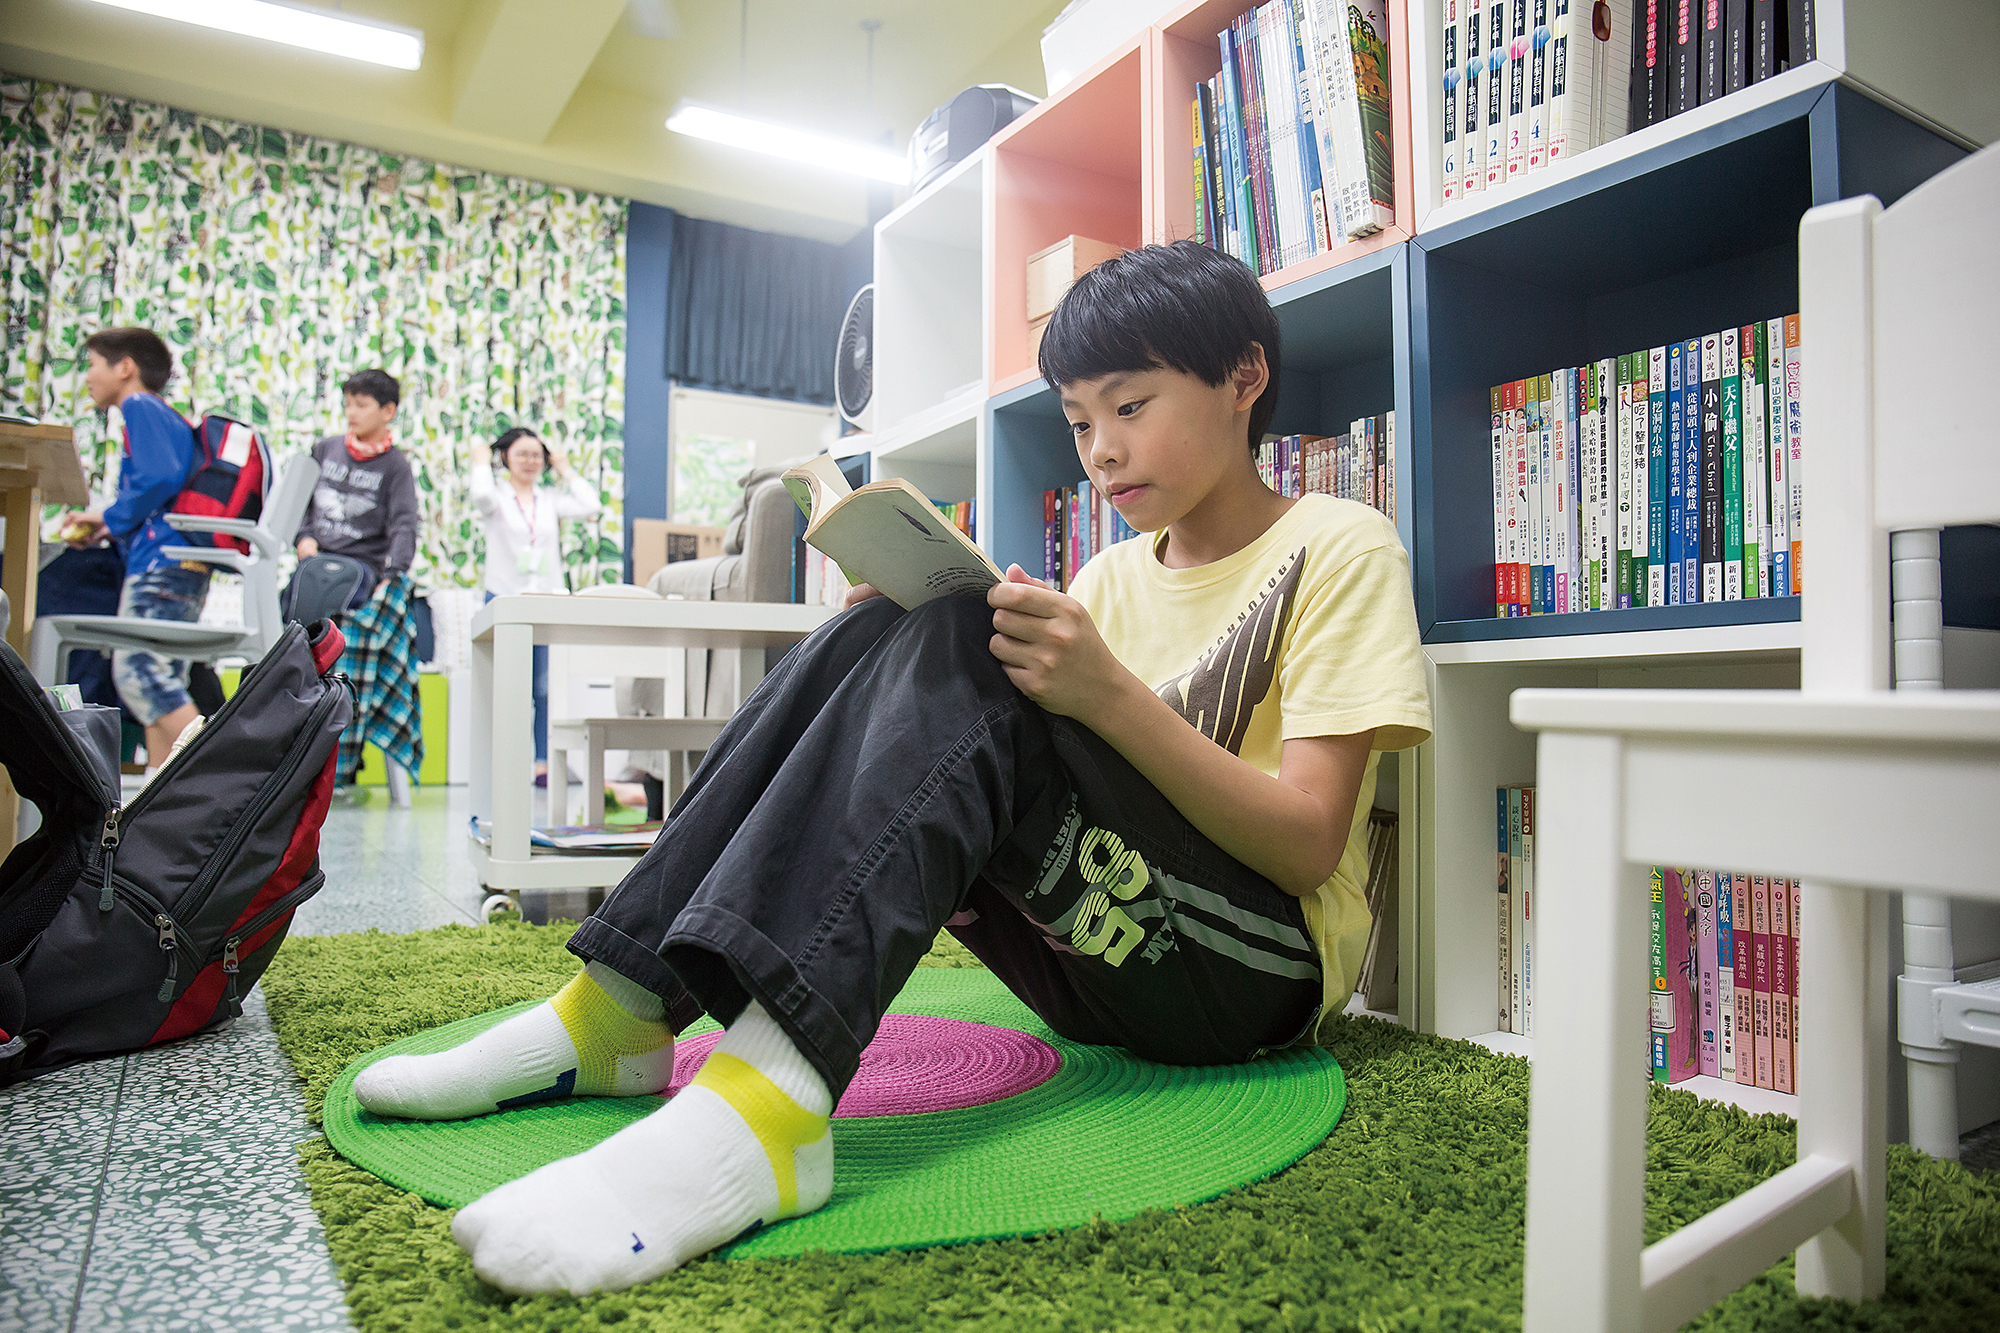 In the thoughtfully laid out classroom, children can find a corner to their own liking and read at leisure. (photo by Lin Min-hsuan)